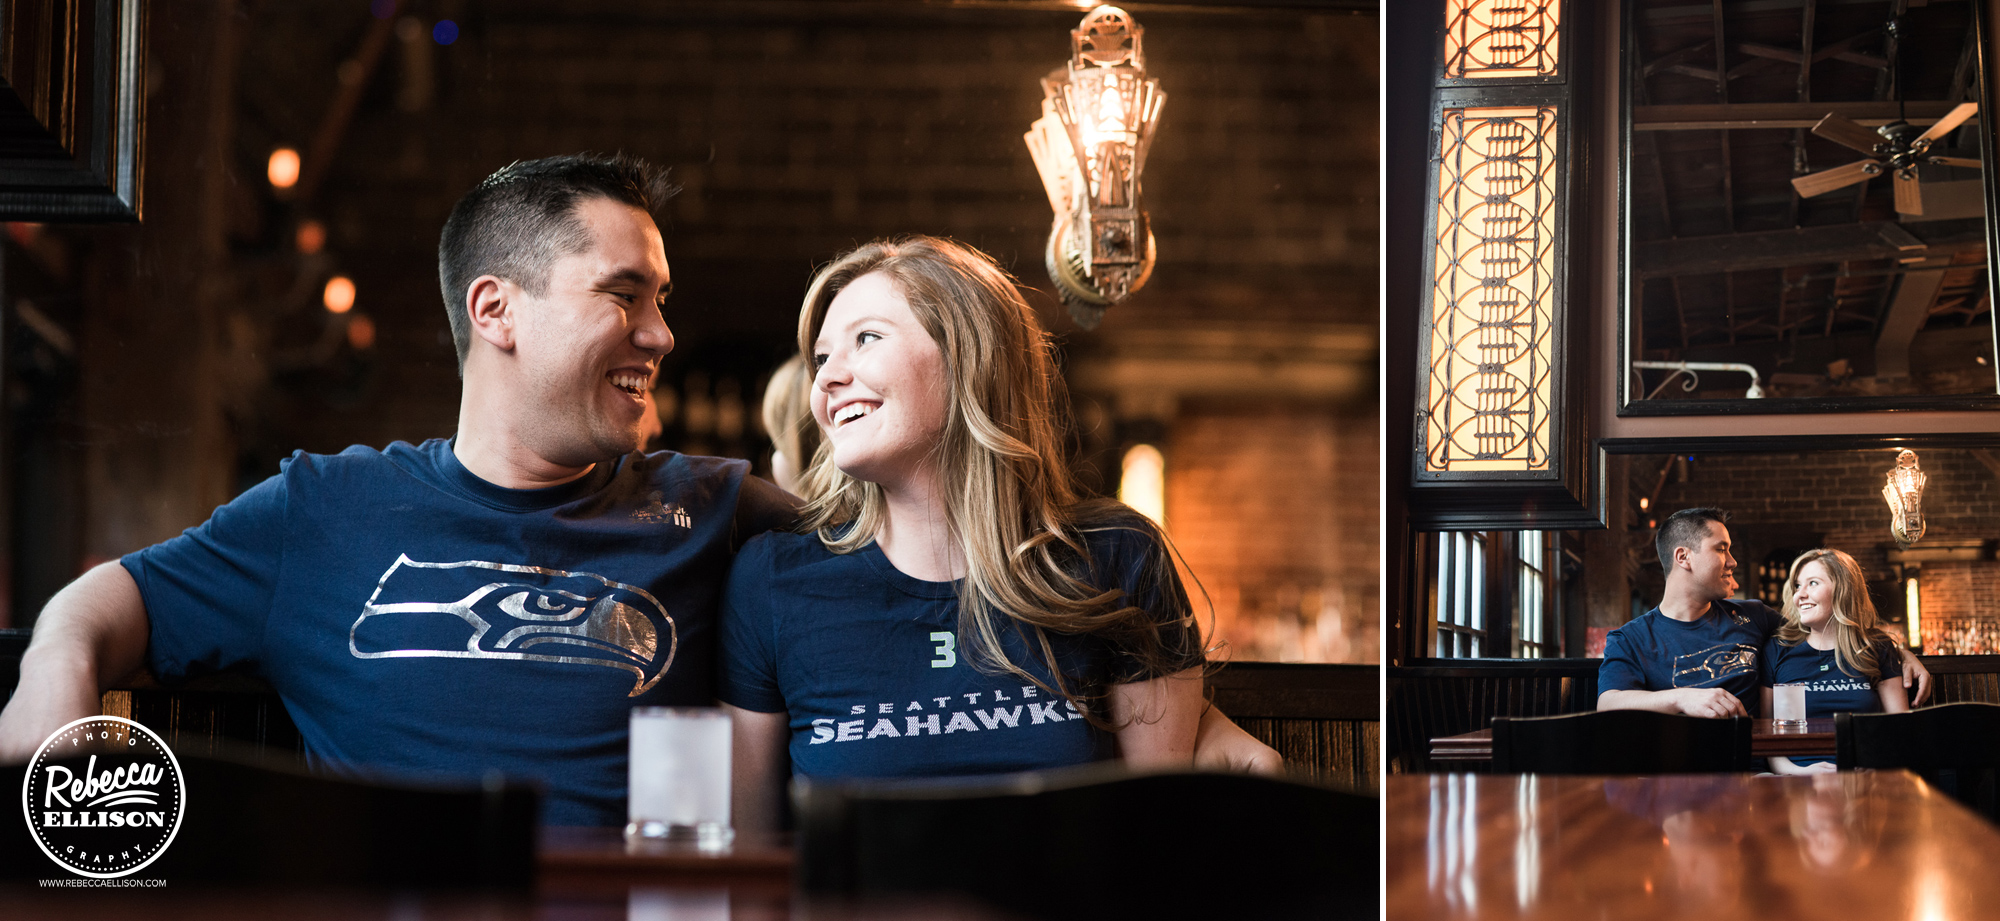 A couple celebrates their engagement wearing Seattle Seahawks t-shirts at the Bastille Bar in Ballard photographed by Rebecca Ellison Photography